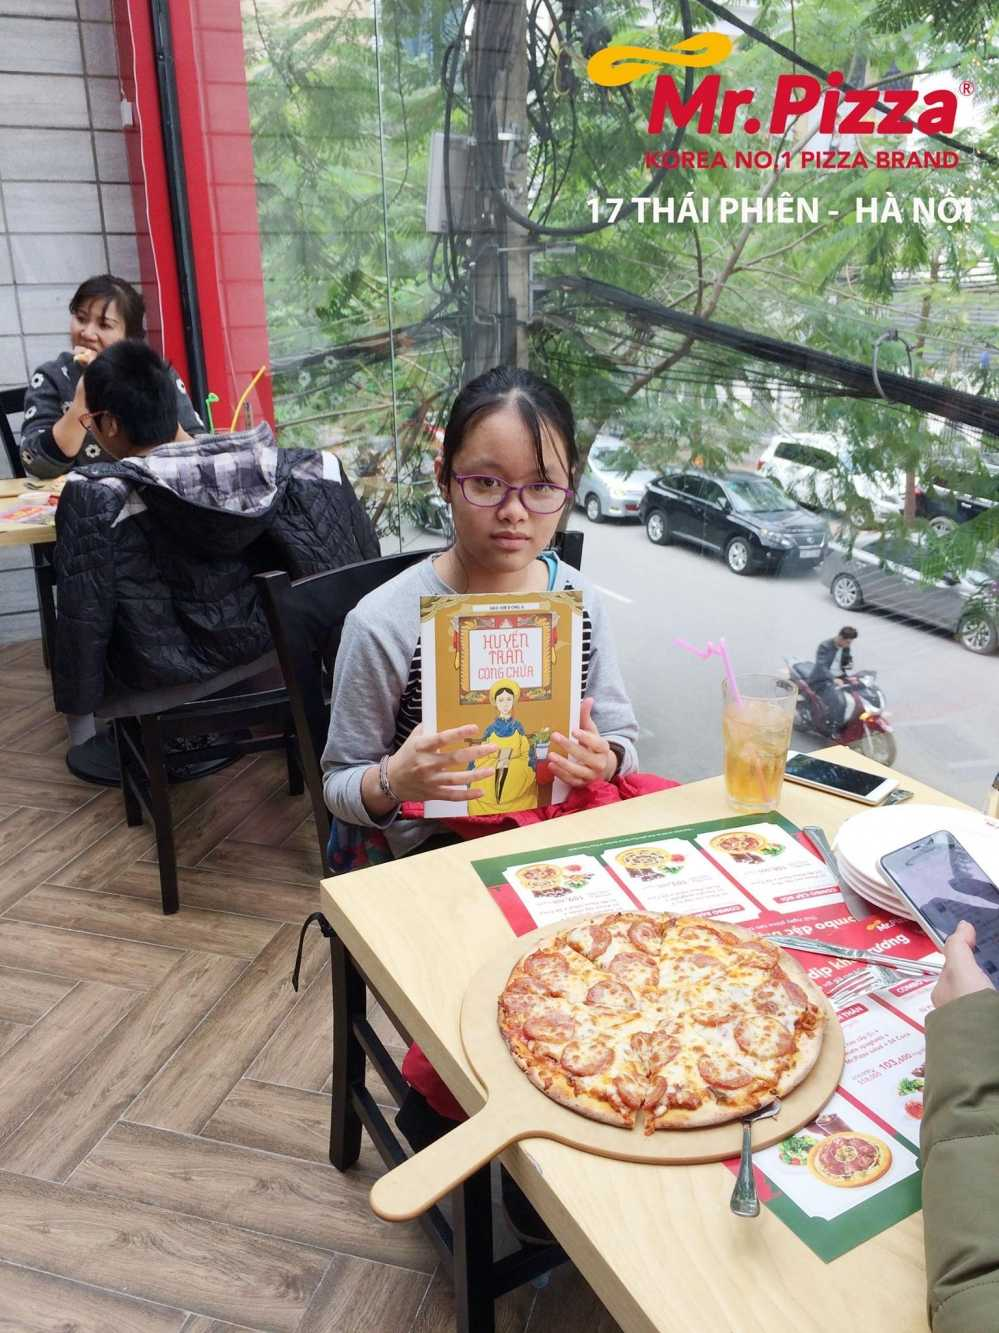 Ong chu Mr. Pizza: Toi muon dong hanh cung tre em ngheo tren con duong hoc thuc hinh anh 3